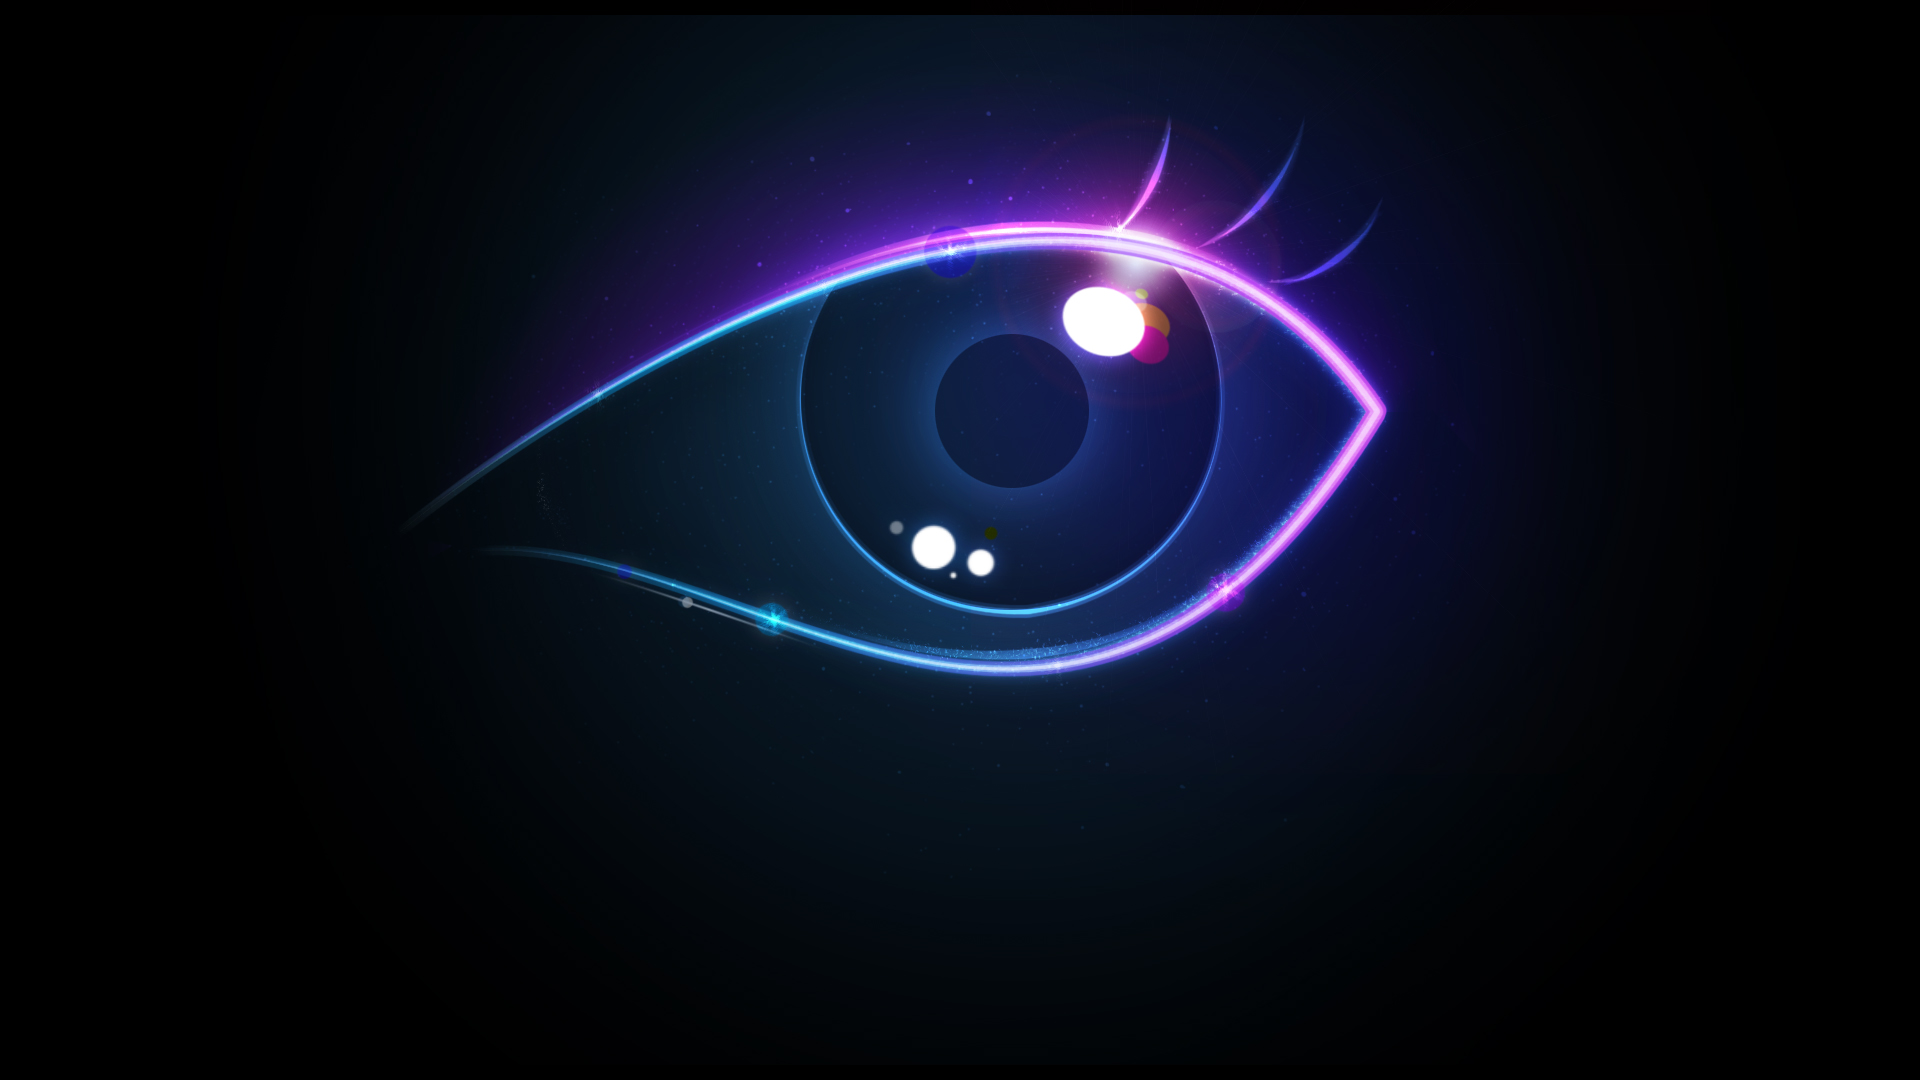 Creative Colorful Eye Wallpapers HD Wallpapers 1920x1080